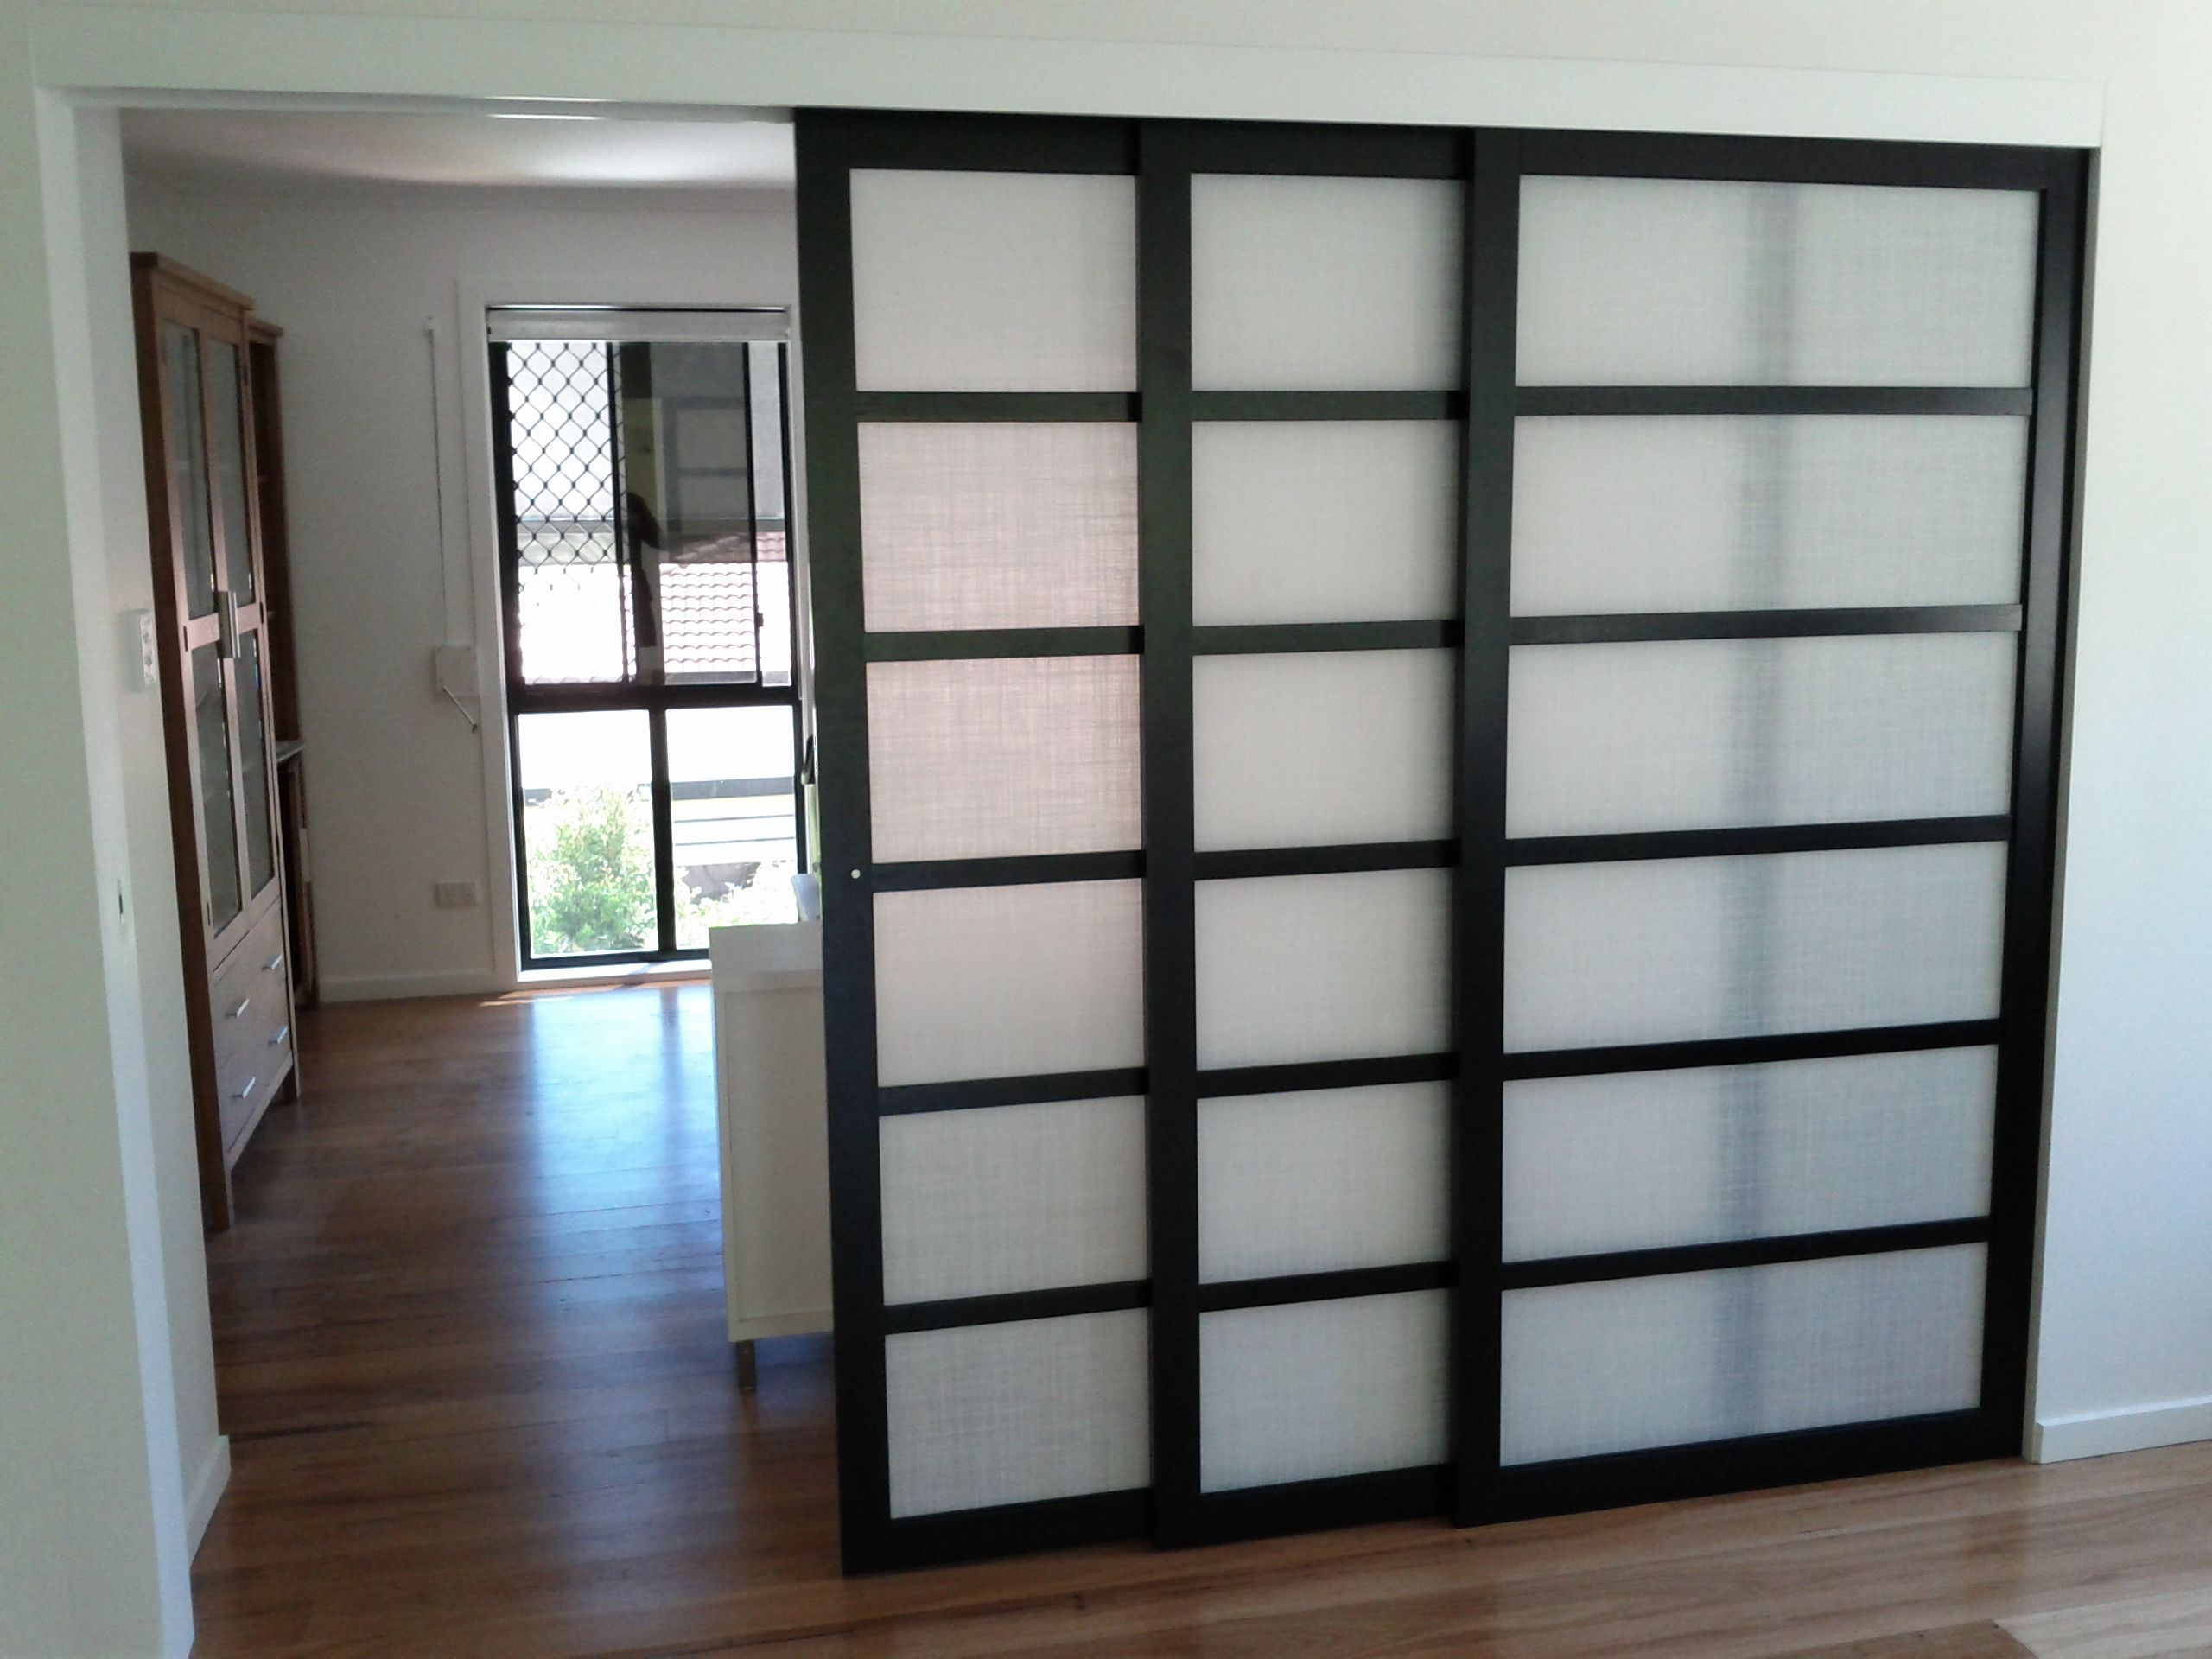 Sliding Anese Doors And Room Dividers Go To Chinesefurniture For Even More Amazing Furniture Home Decoration Tips Roomdividerwithtv